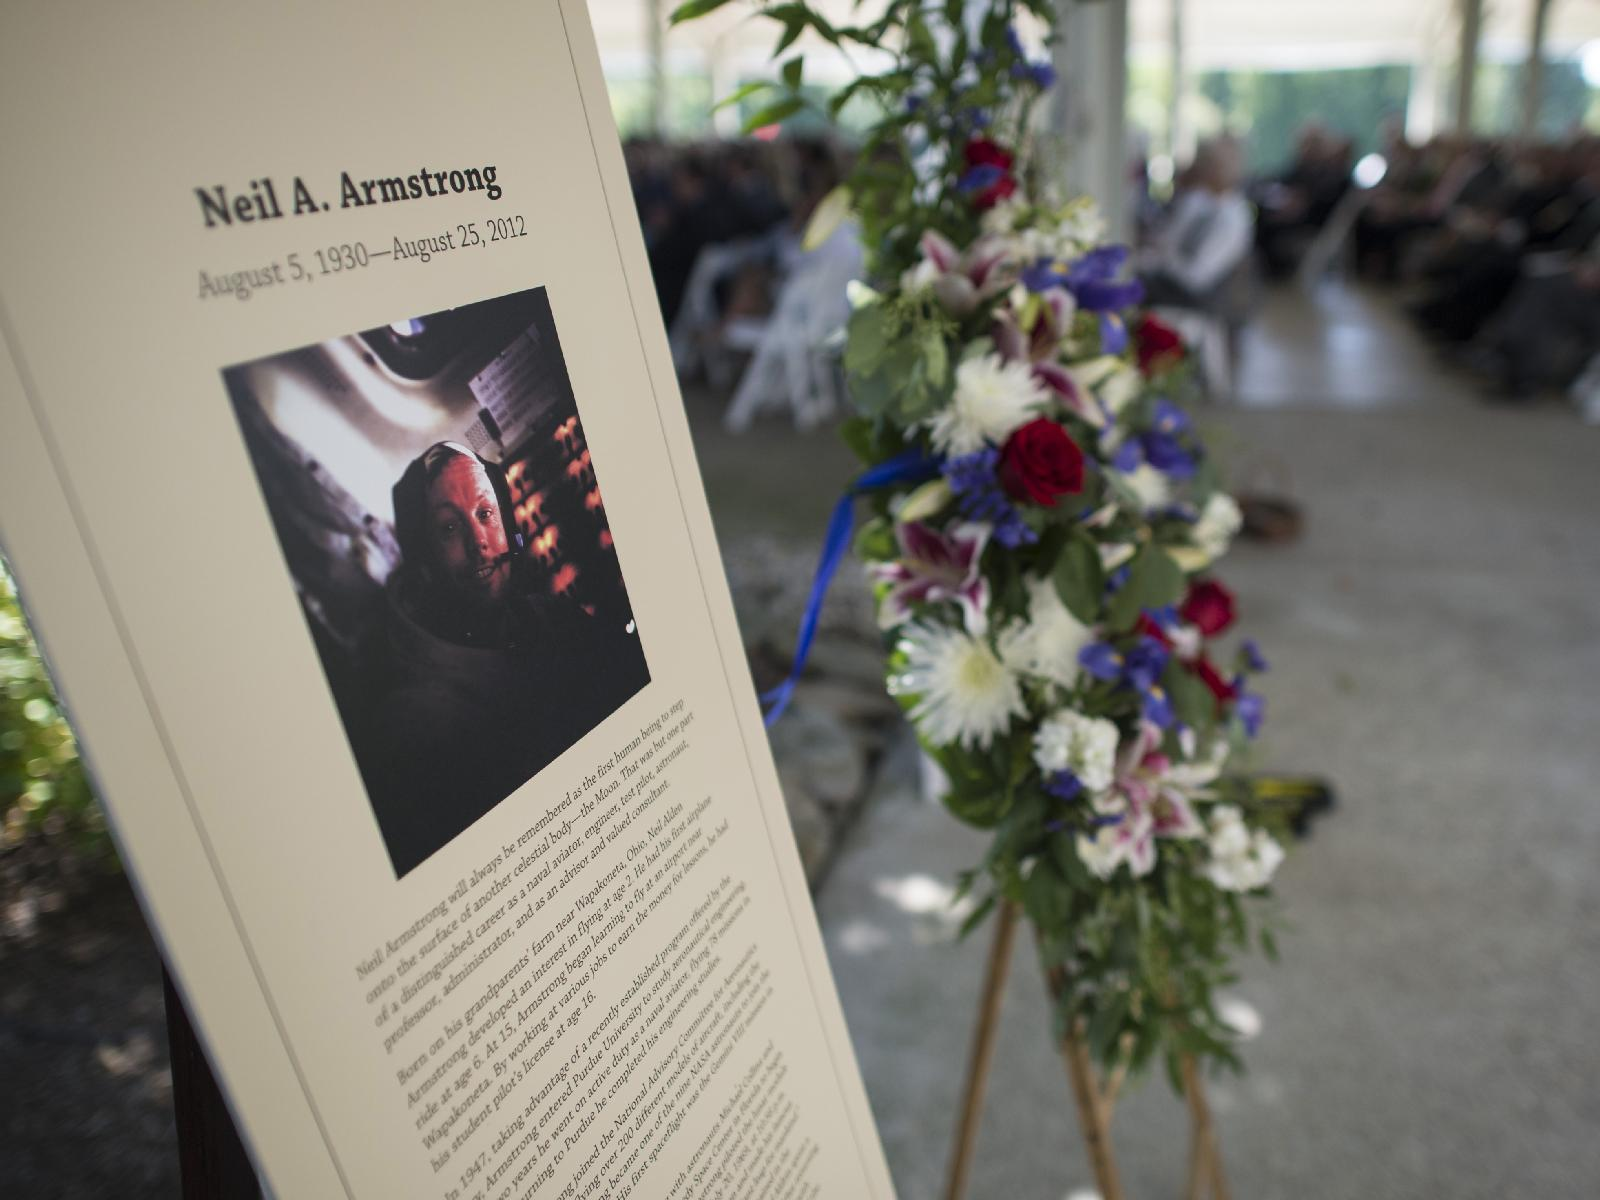 Neil Armstrong Remembered: Tribute